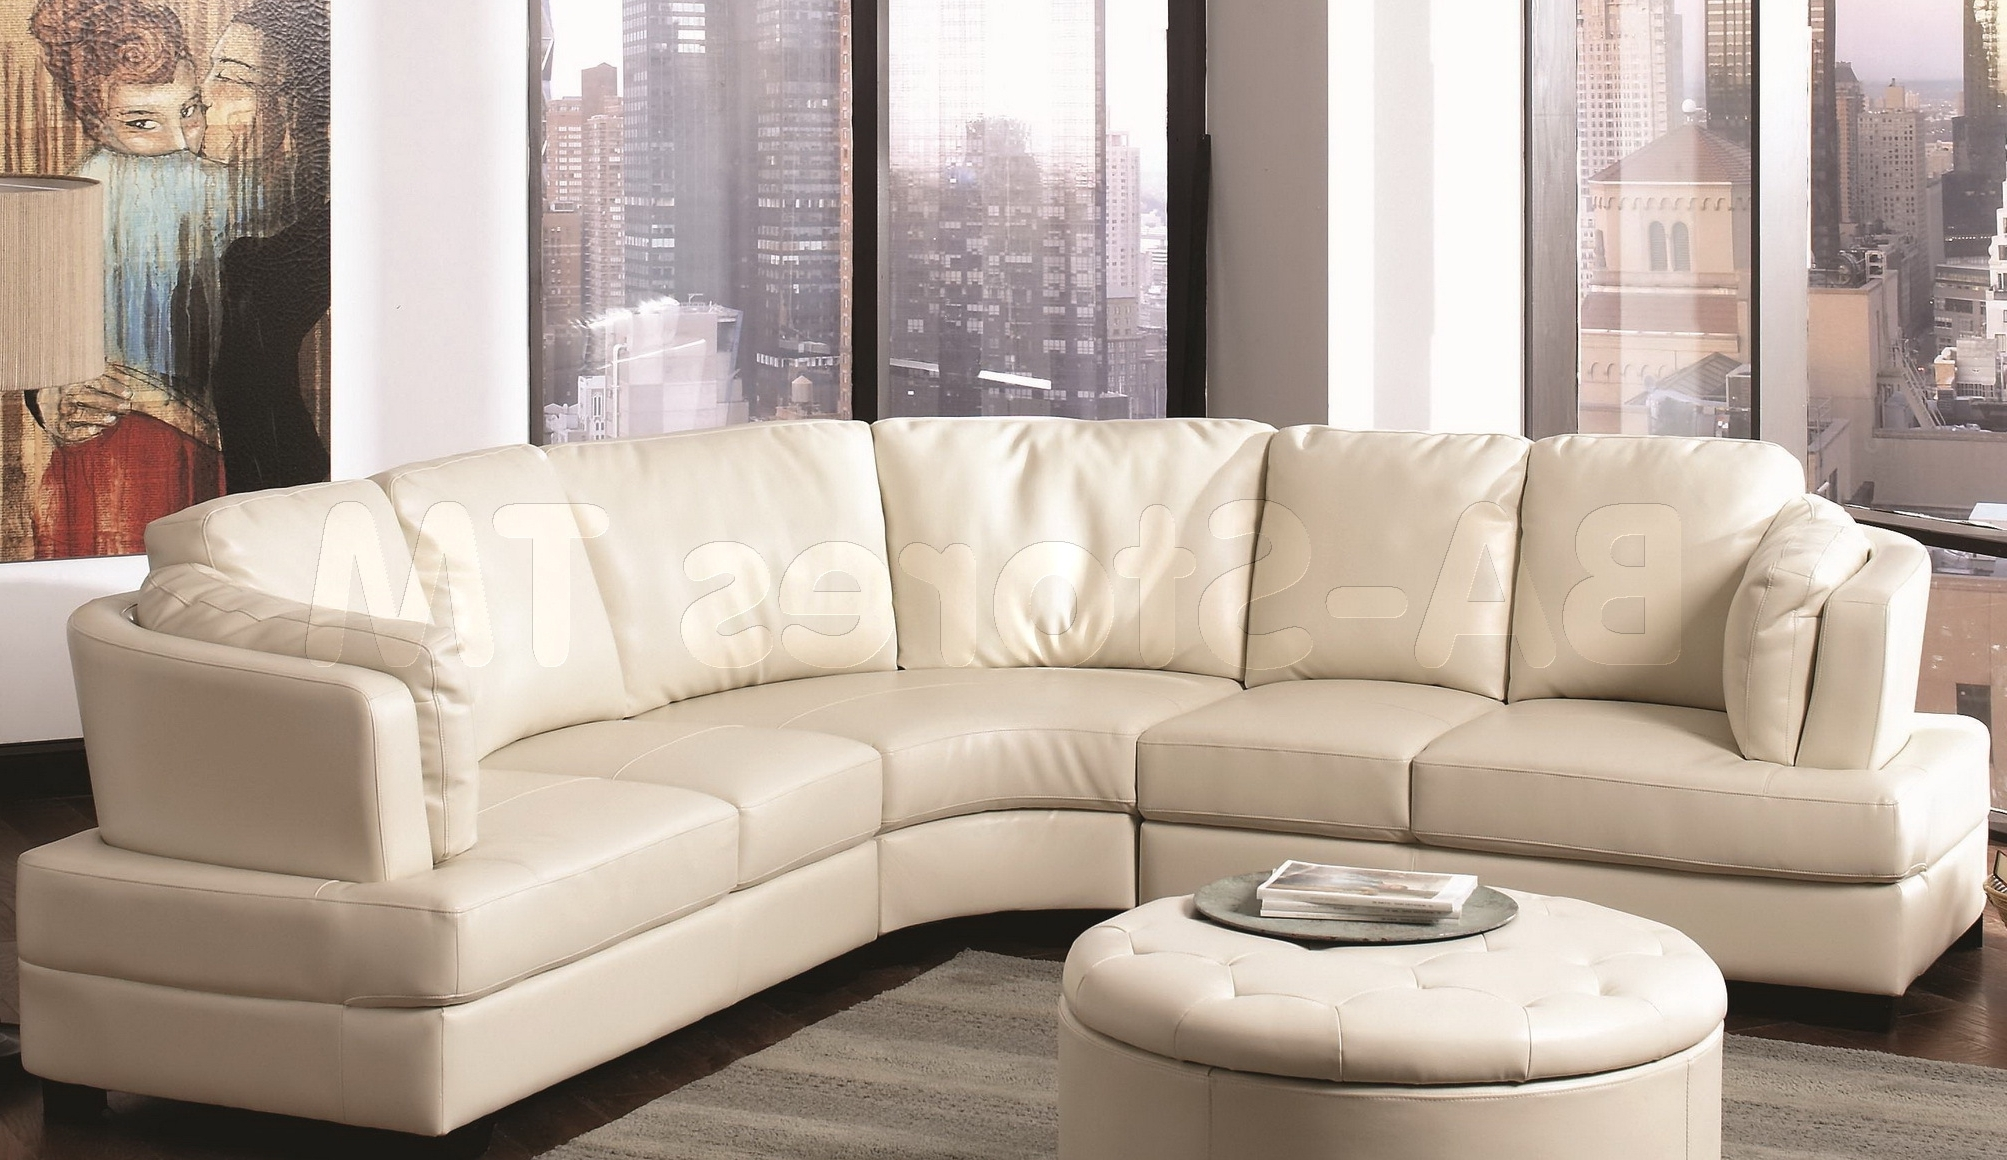 Favorite Furniture: Using Pretty Cheap Sectional Sofas Under 300 For In Tallahassee Sectional Sofas (View 4 of 15)